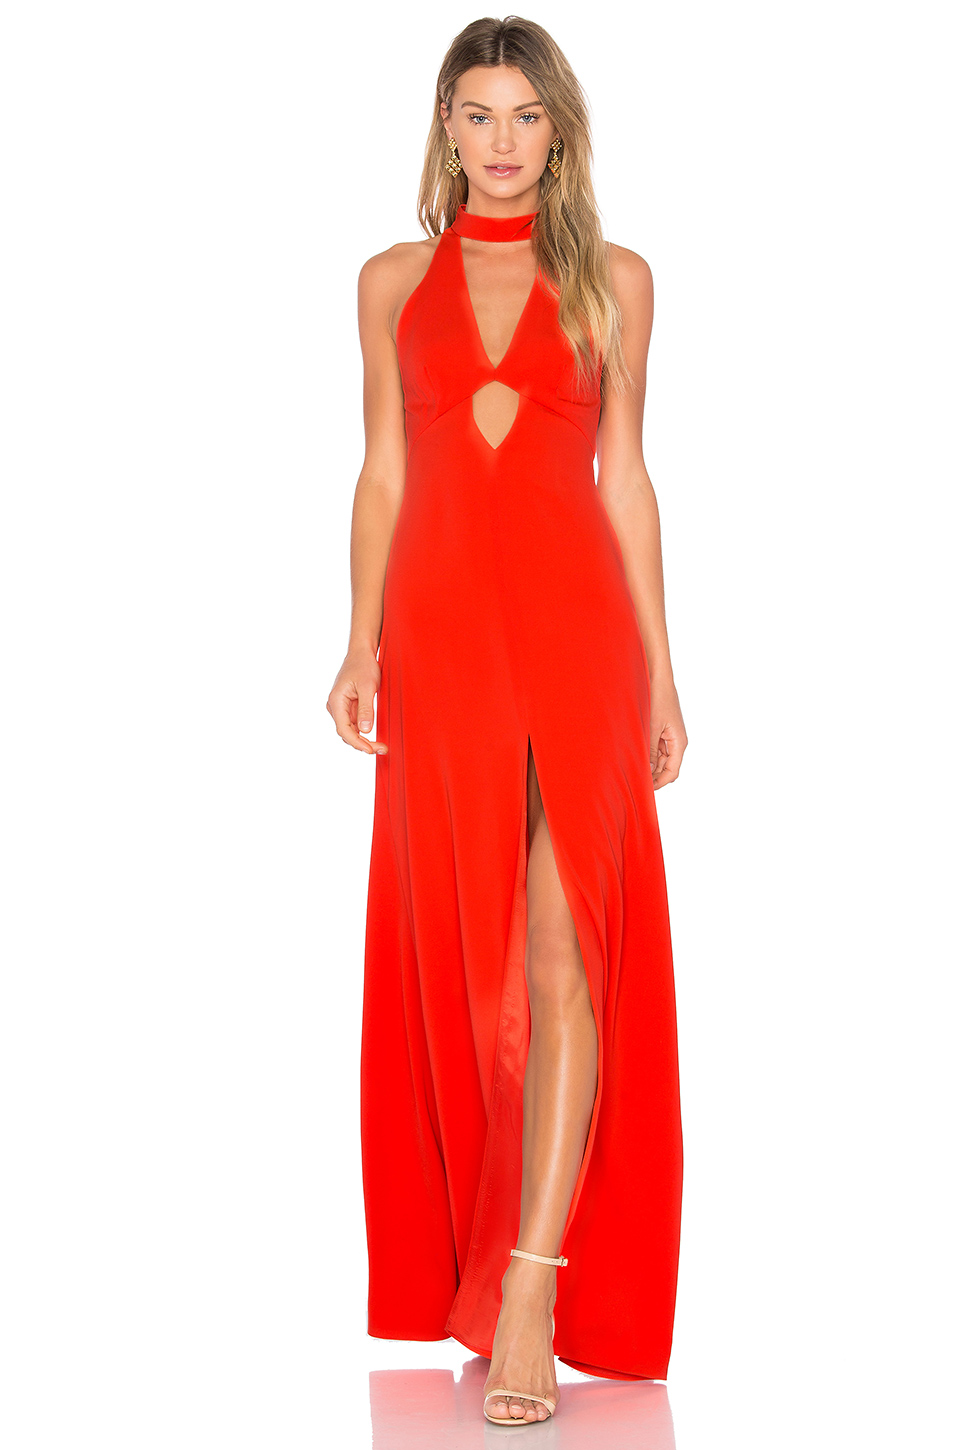 Jill Jill Stuart High Neck Gown In Orange